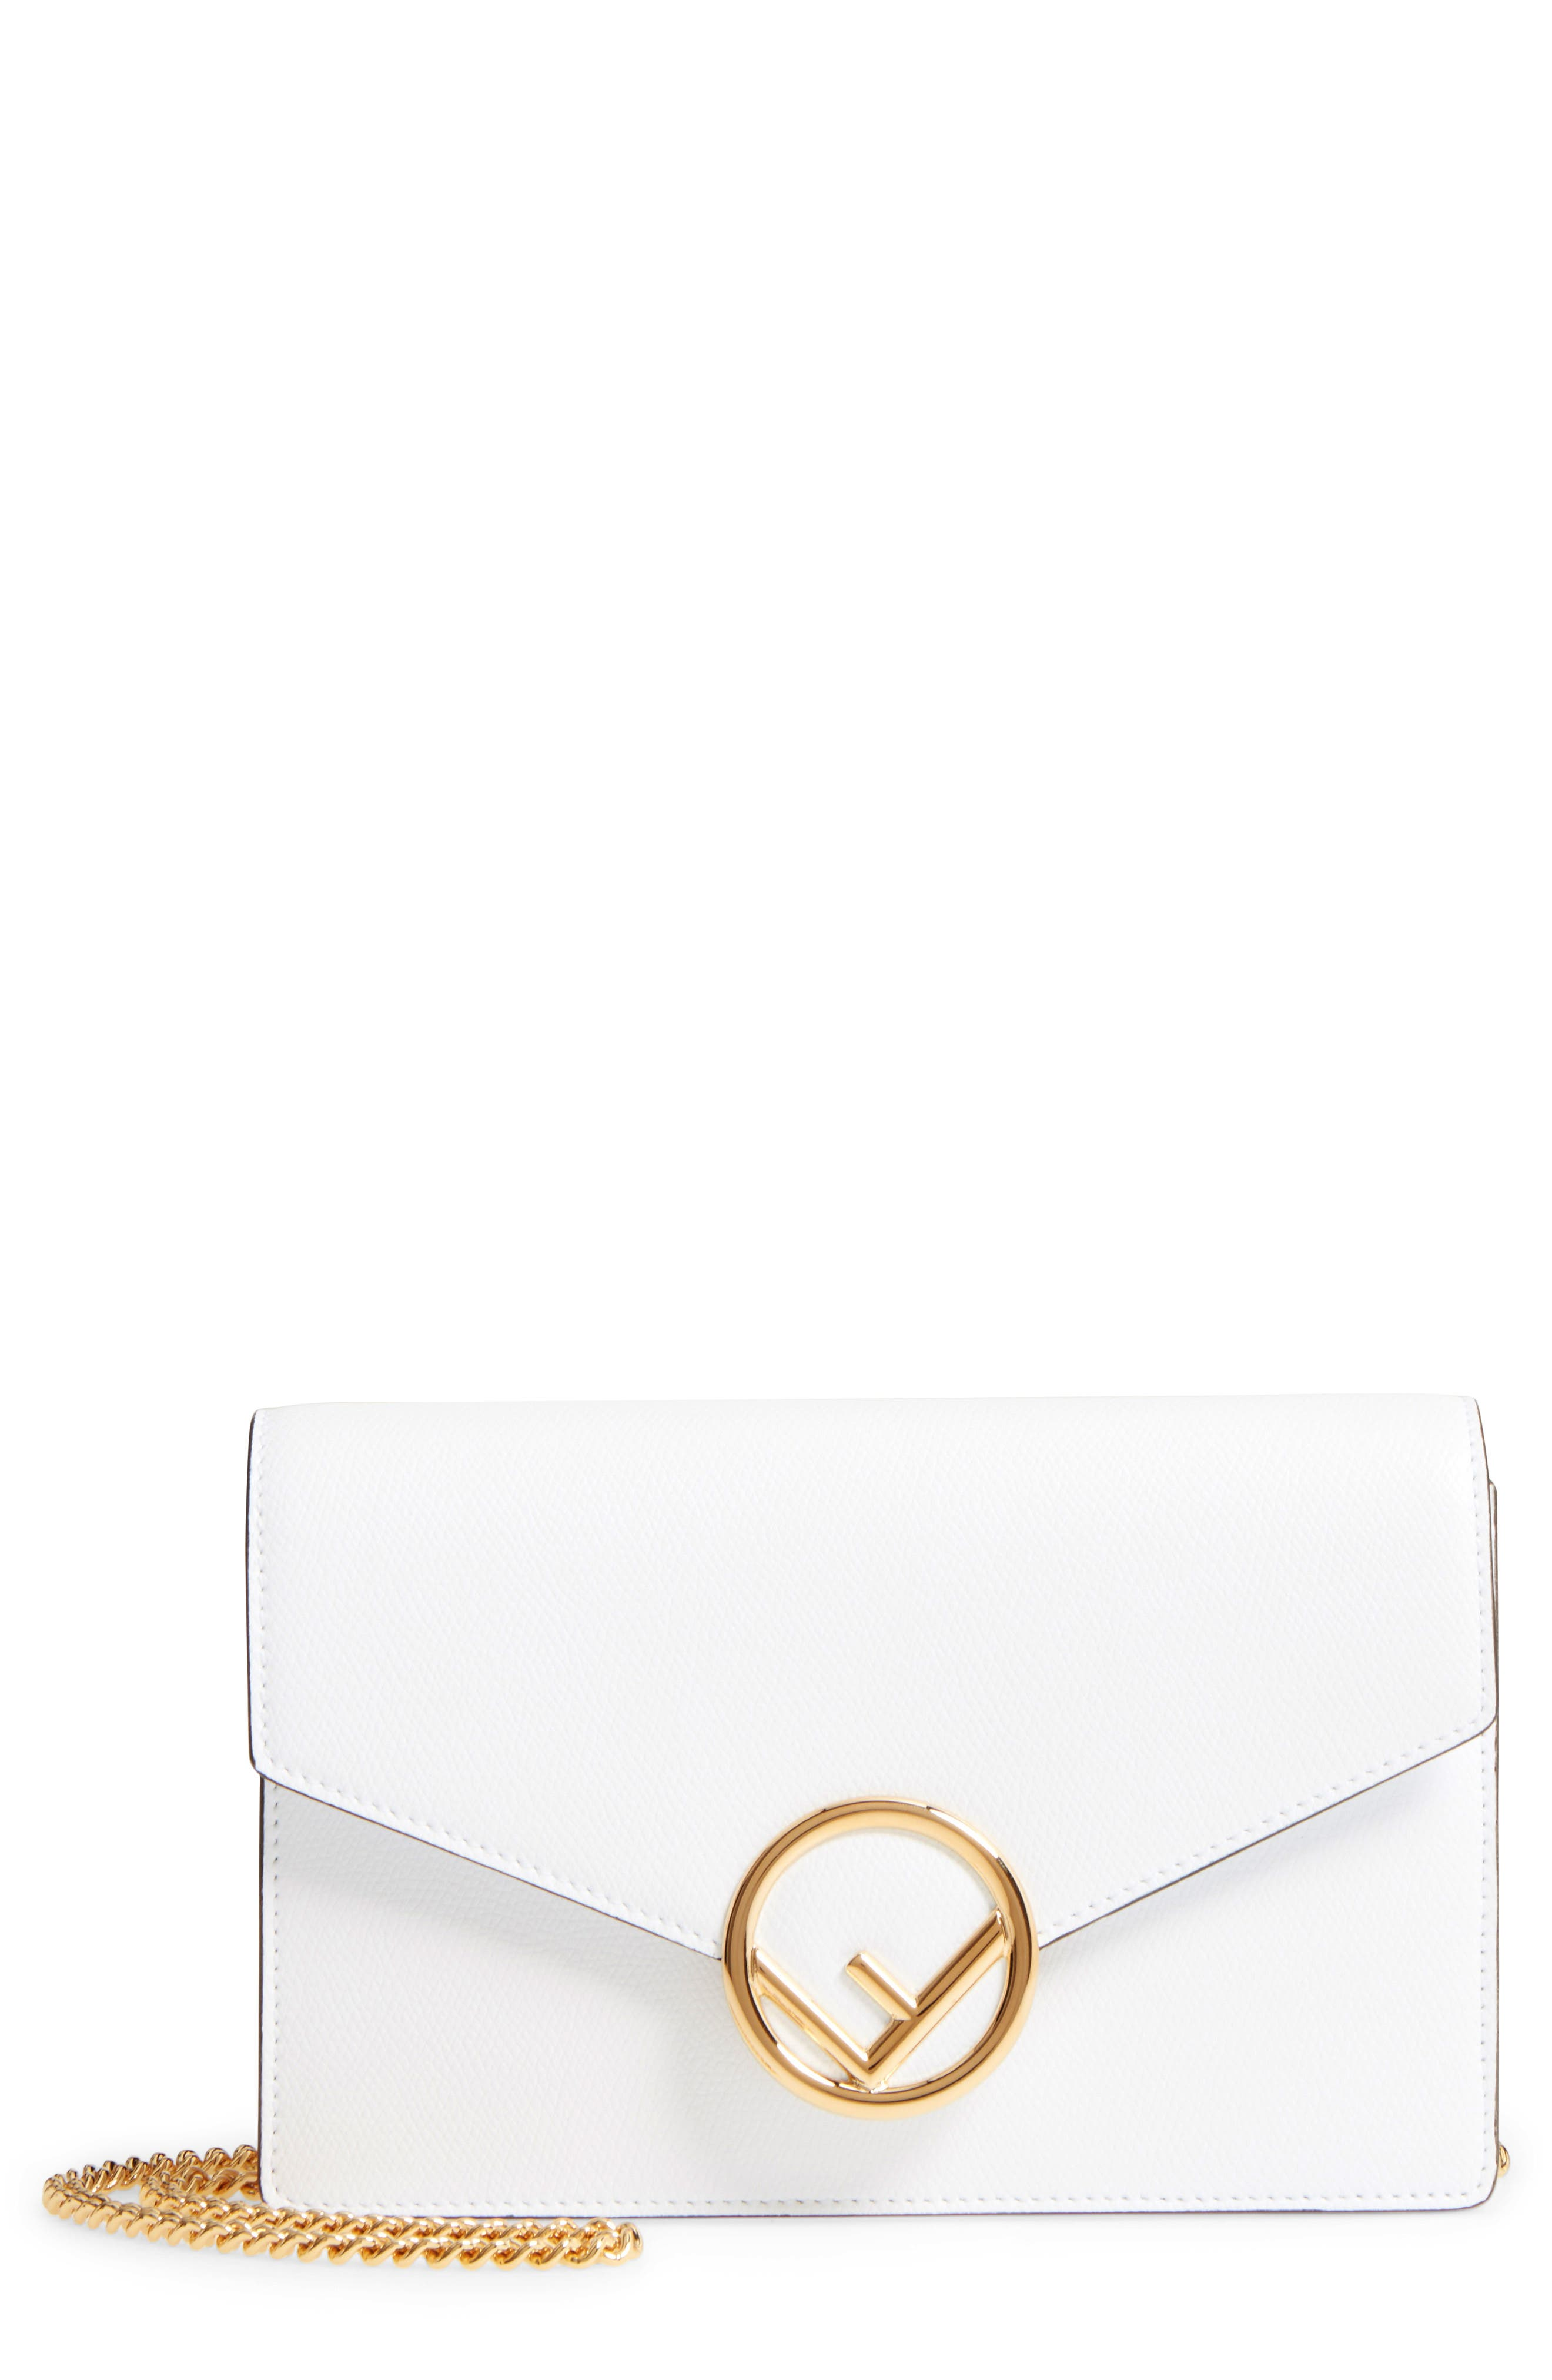 Alternate Image 1 Selected - Fendi Liberty Logo Leather Wallet on a Chain